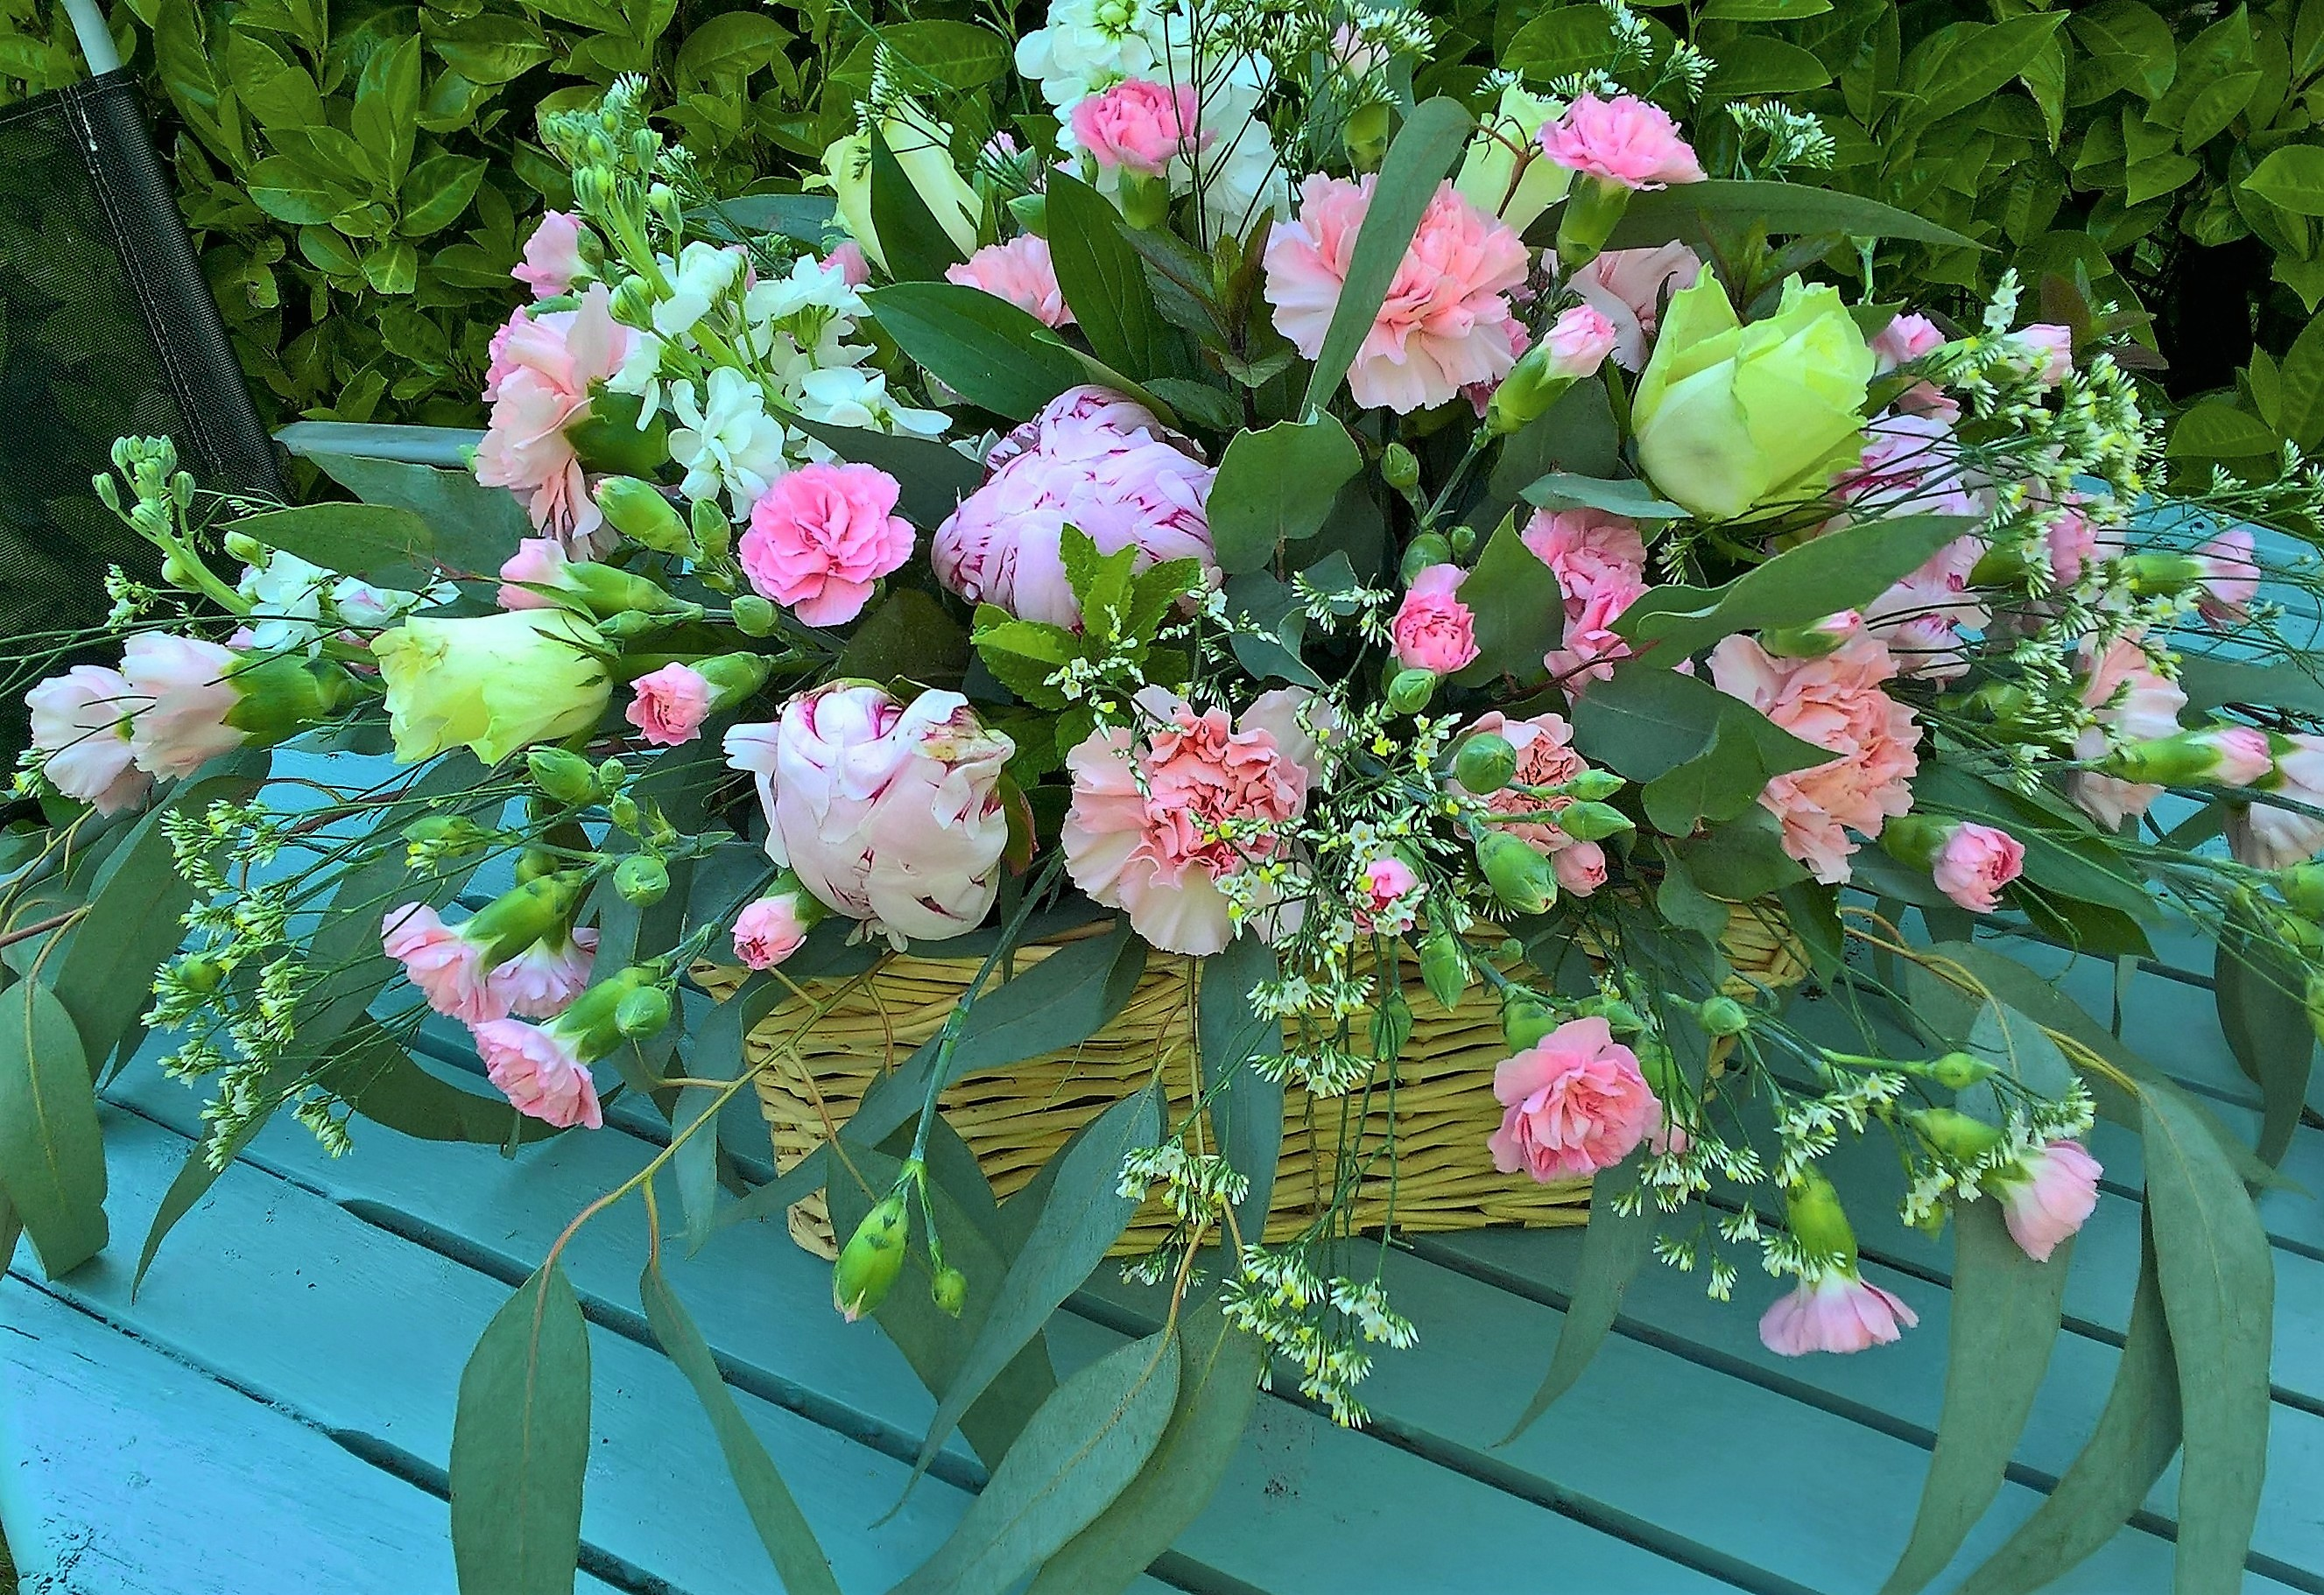 Basket of peonies and carnation